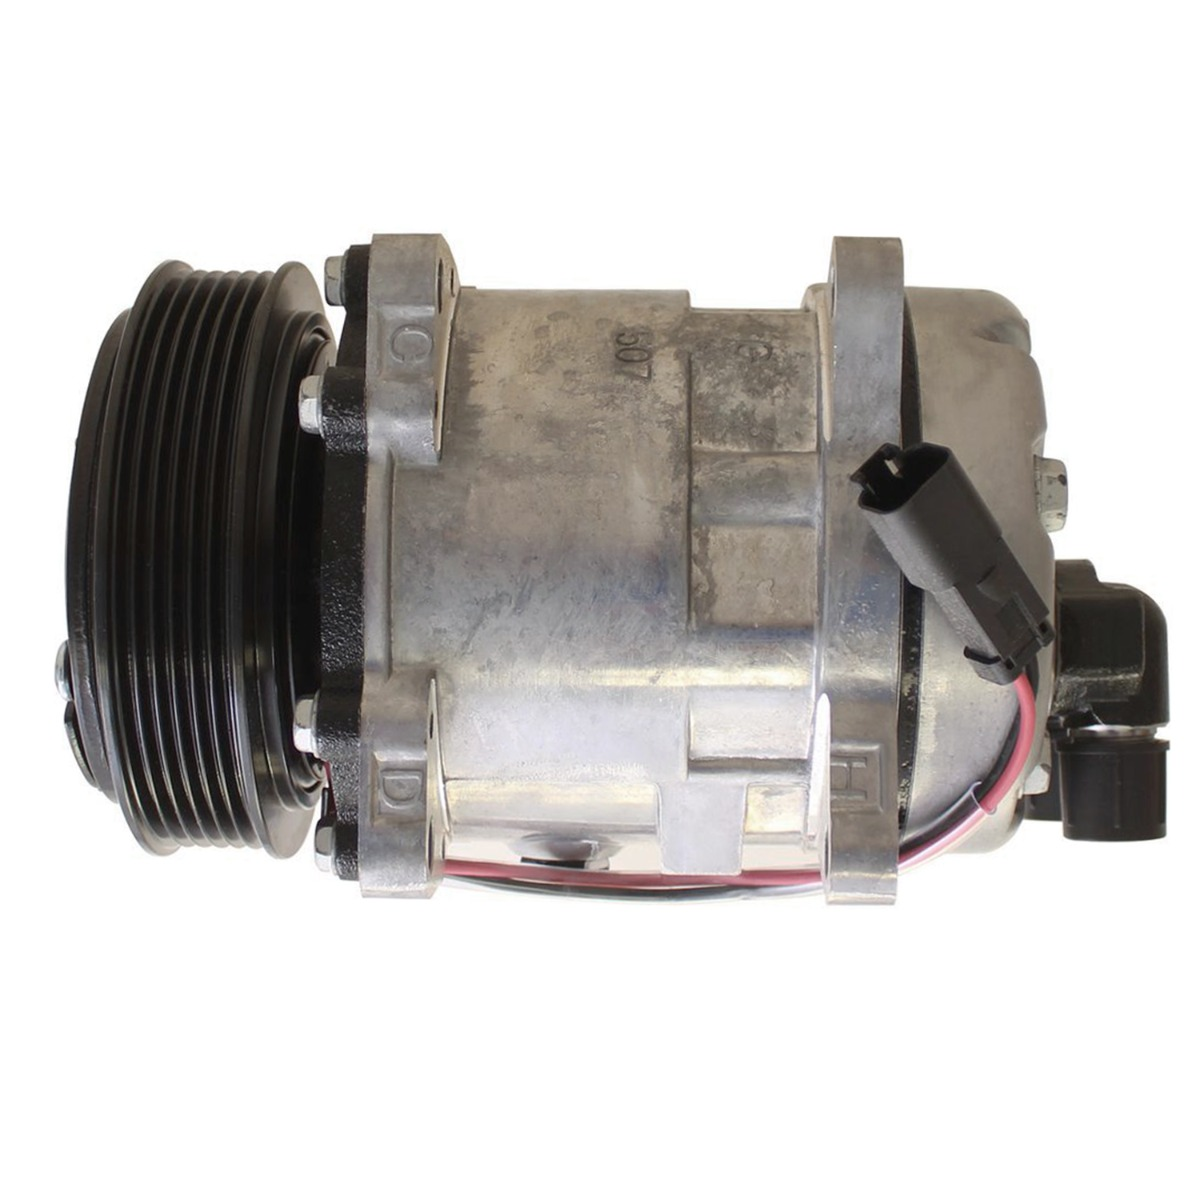 Air Conditioning Compressor 7023580 12V Compatible with Bobcat Skid Steer Loader A770 L750 S630 S650 S750 S770 S850 T630 T650 T750 T770 T870